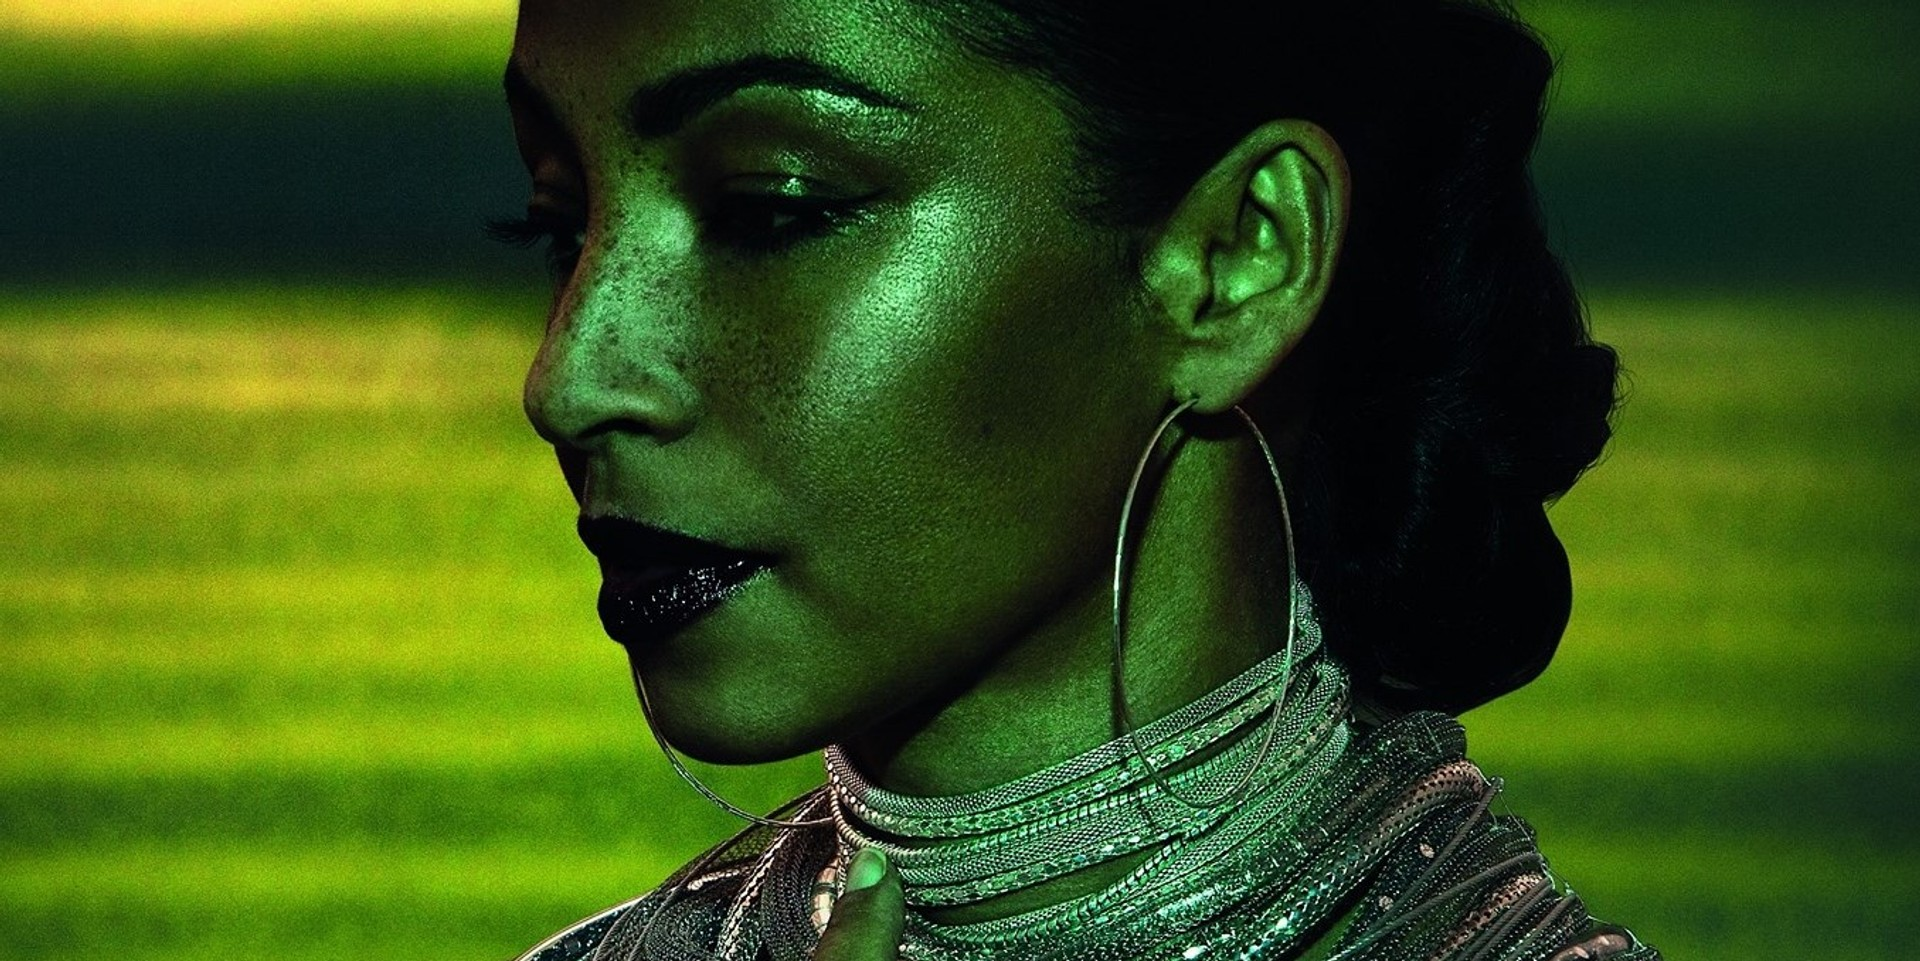 'Flower of the Universe', Sade's contribution to the A Wrinkle in Time soundtrack and her first new material in eight years is here – listen